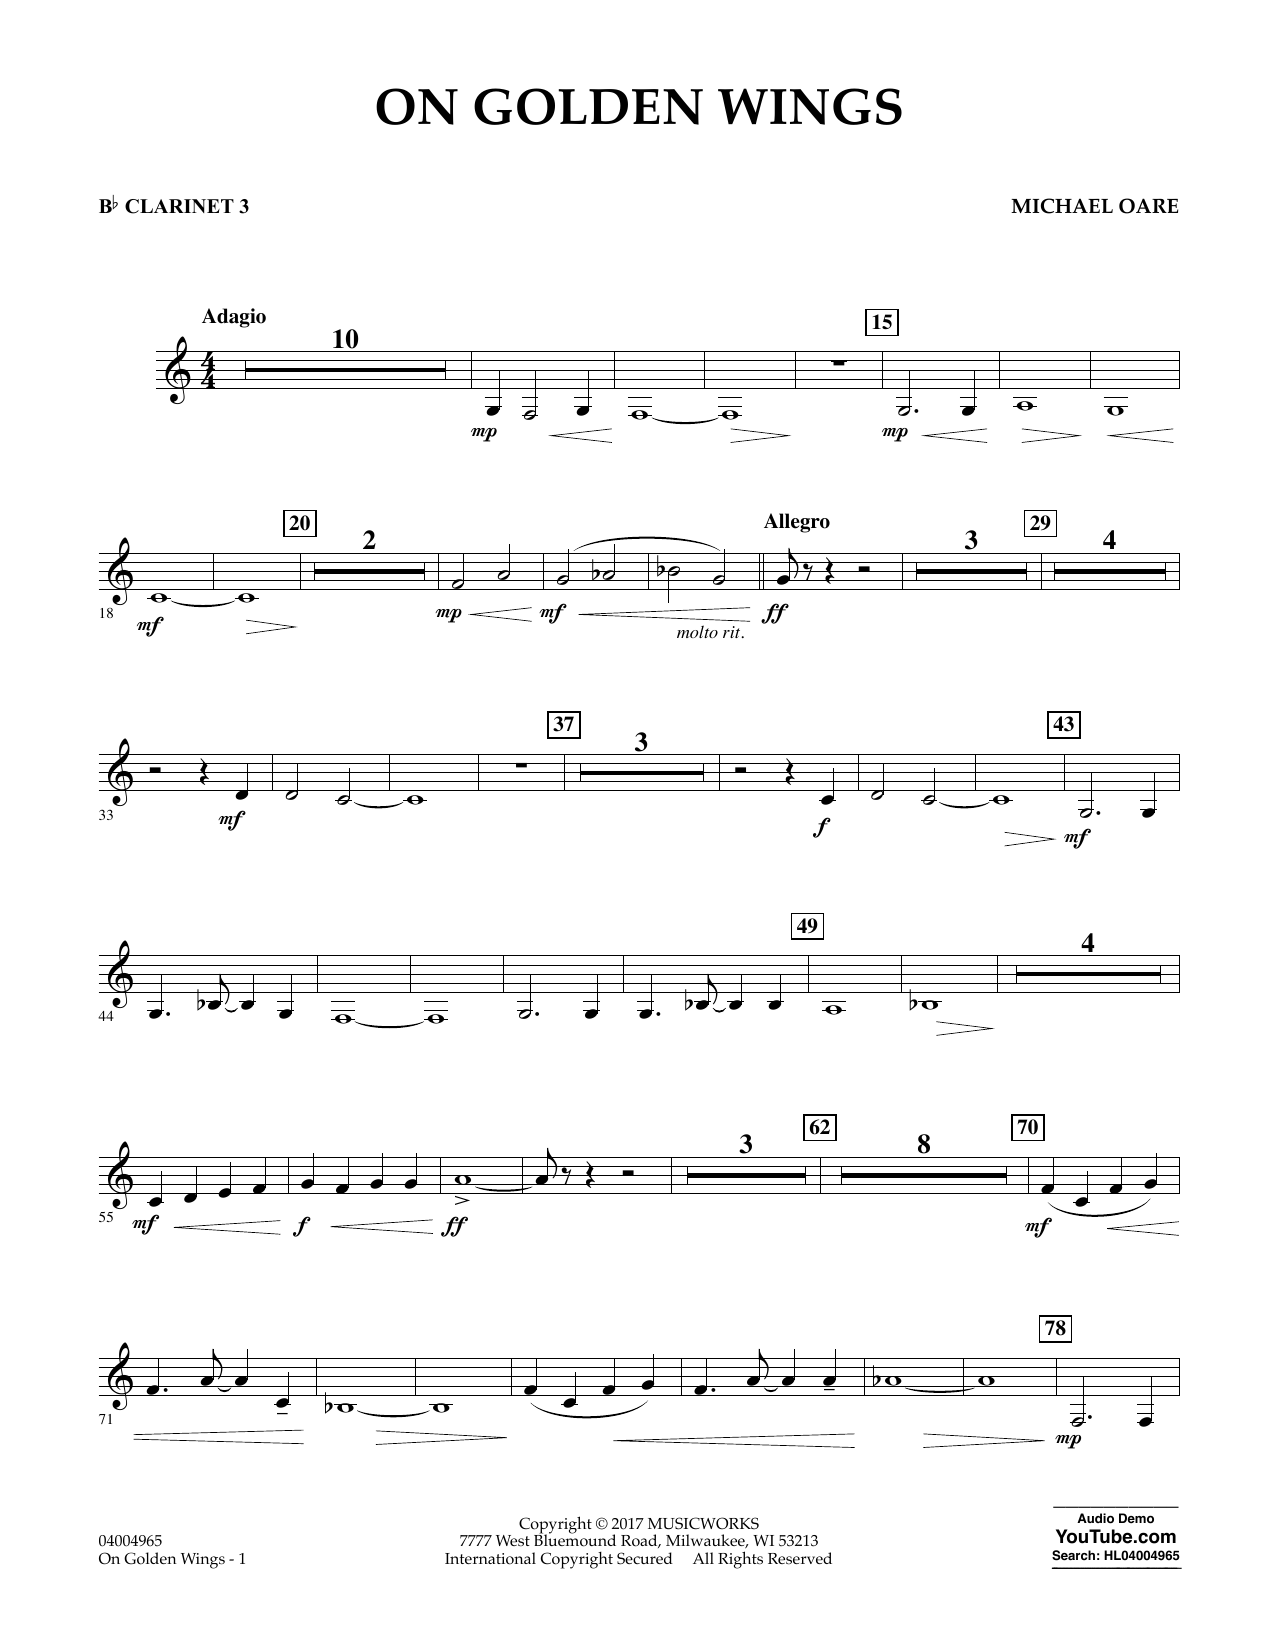 Michael Oare On Golden Wings - Bb Clarinet 3 sheet music notes and chords. Download Printable PDF.